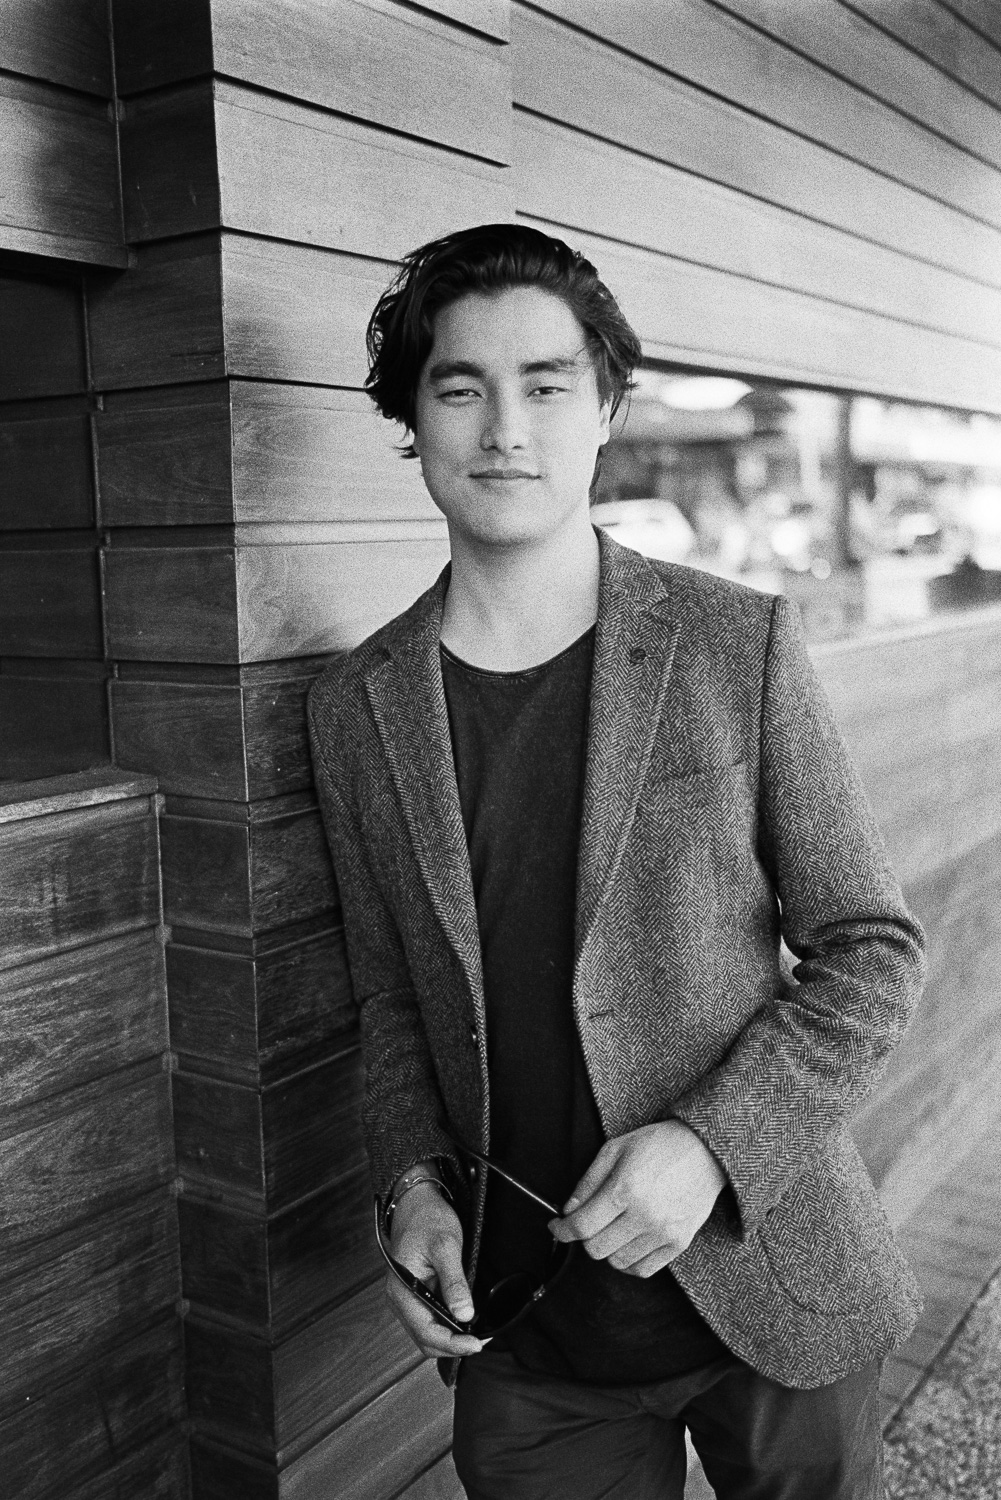 20170819 - Roll 150 - 009-Nick-Bedford,-Photographer-Actor, Black and White, Brisbane, Film, Kodak Tri-X 400, Leica M7, Marco Polo, Portrait, Remy Hii, Street Photography, Voigtlander 35mm F1.7 Ultron.jpg